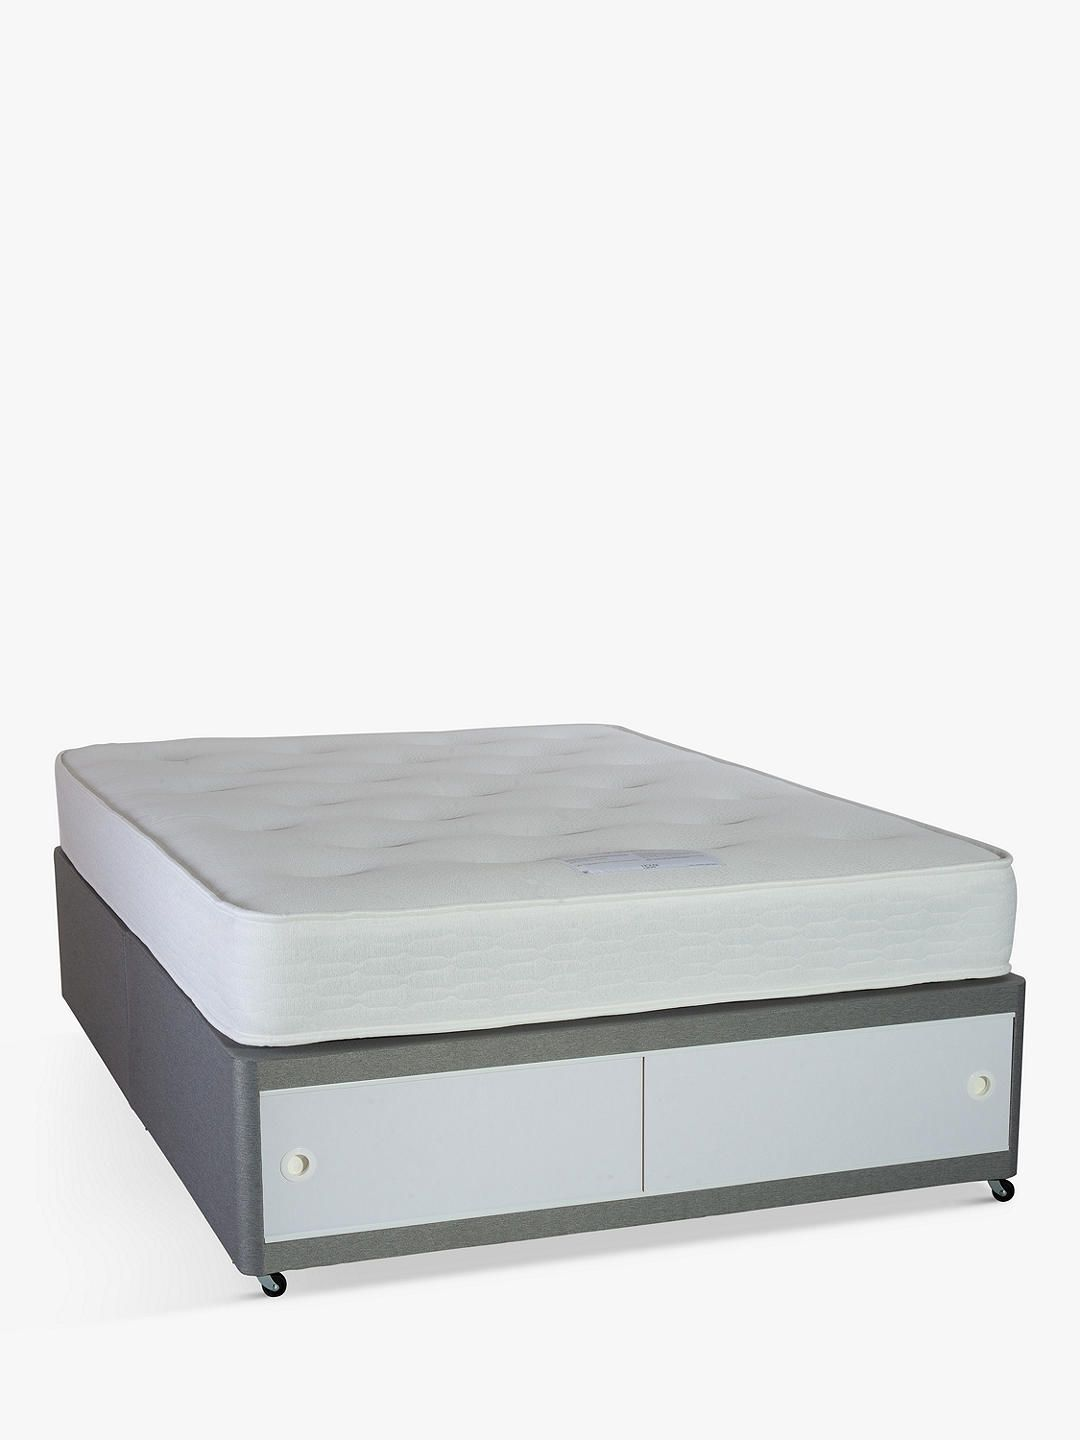 House By John Lewis Divan Base And Open Coil Mattress Set Medium